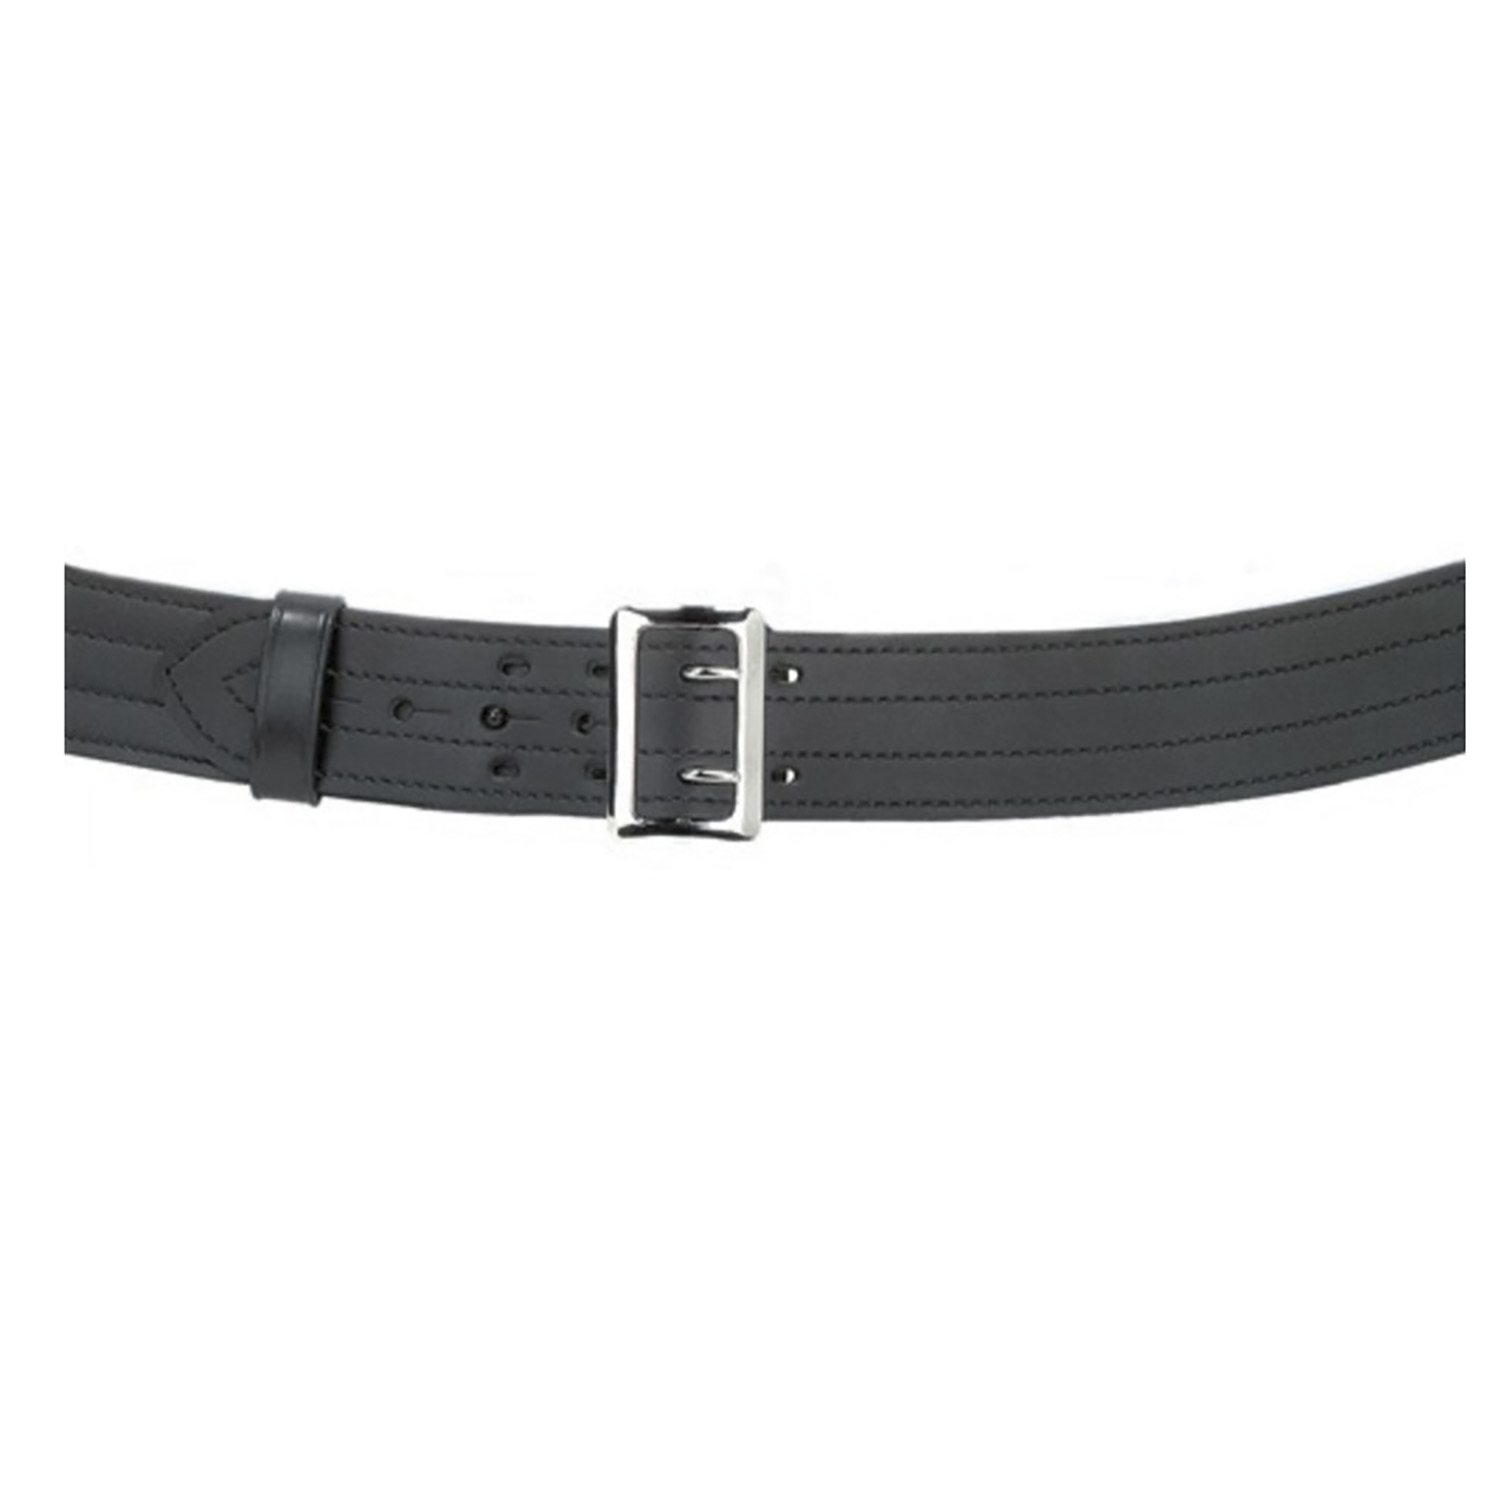 Safariland Women's 2.25 inch Duty Belt